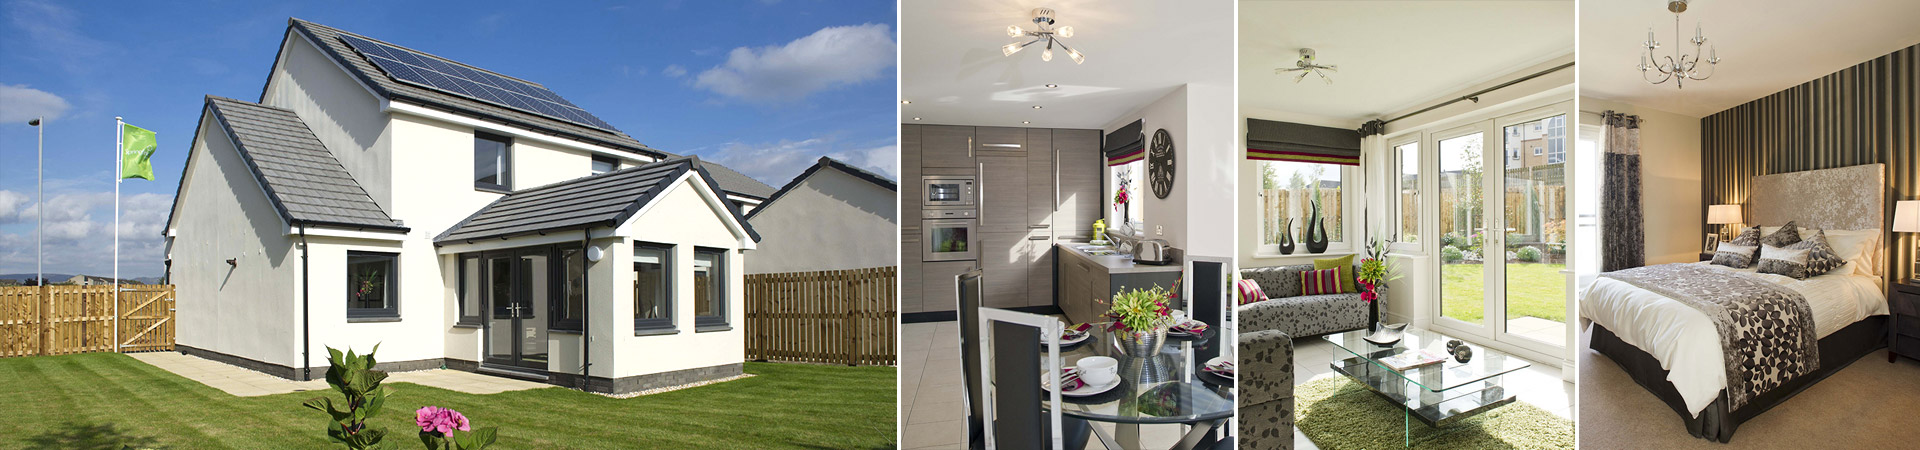 Braehead Homes by Springfield